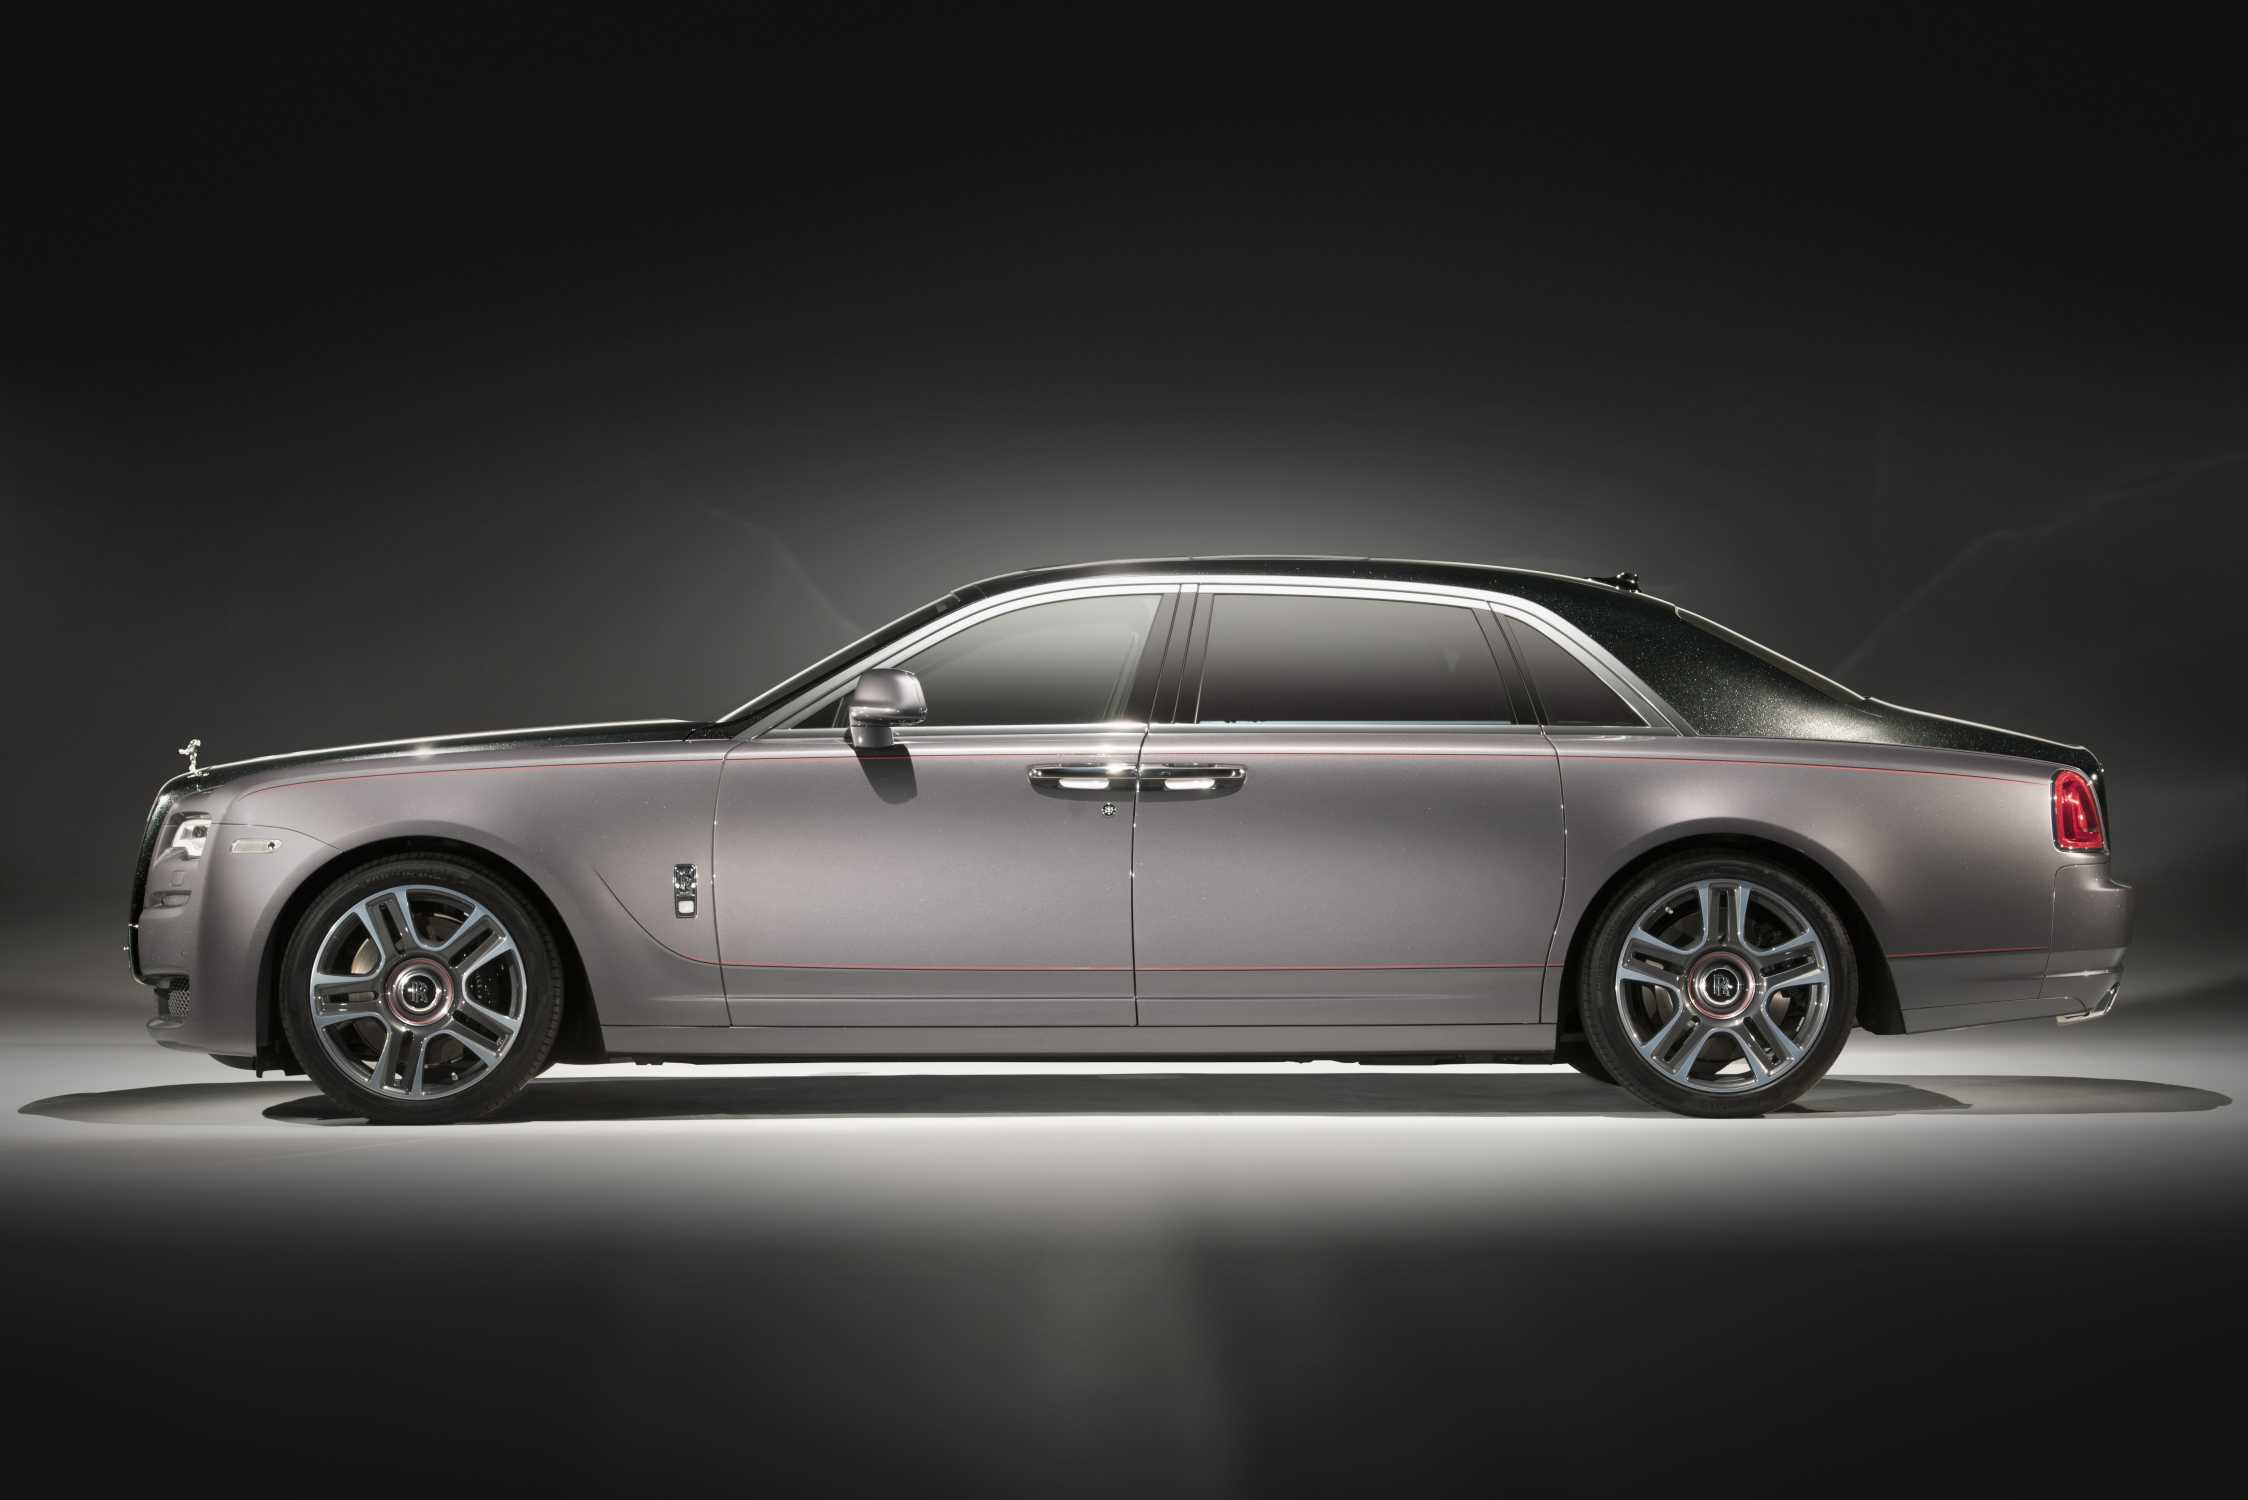 rolls royce brings elegance to the 2017 geneva motor show as it demonstrates the many facets of. Black Bedroom Furniture Sets. Home Design Ideas